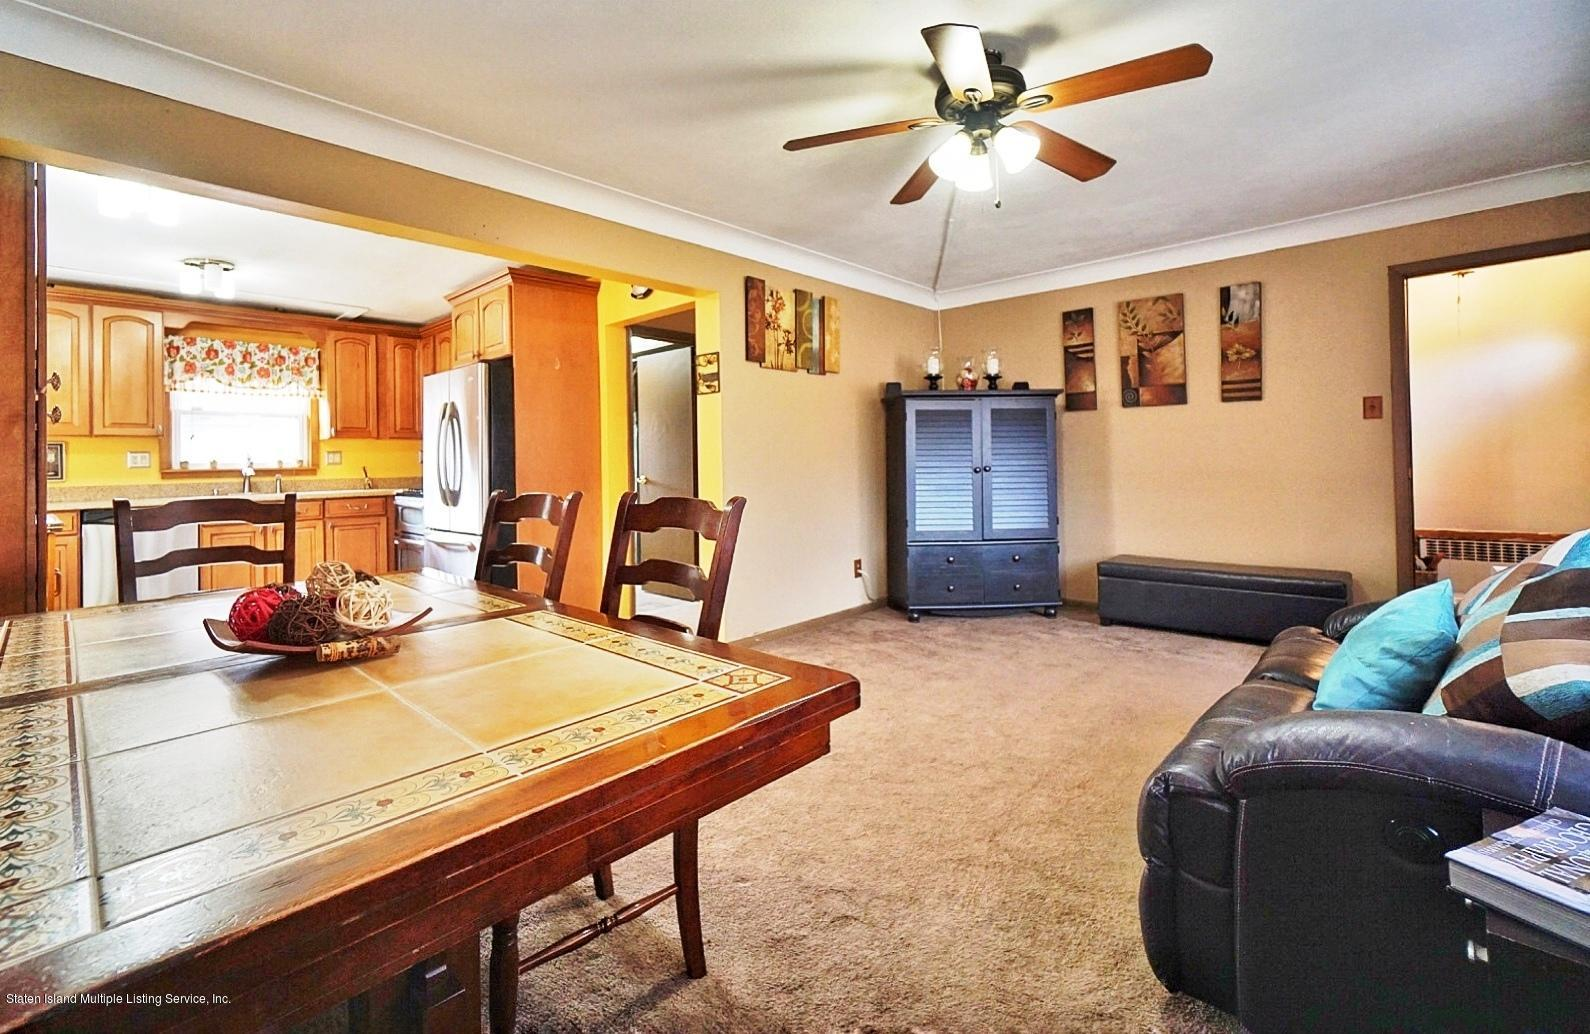 Two Family - Detached 36 Labau Avenue  Staten Island, NY 10301, MLS-1126079-4